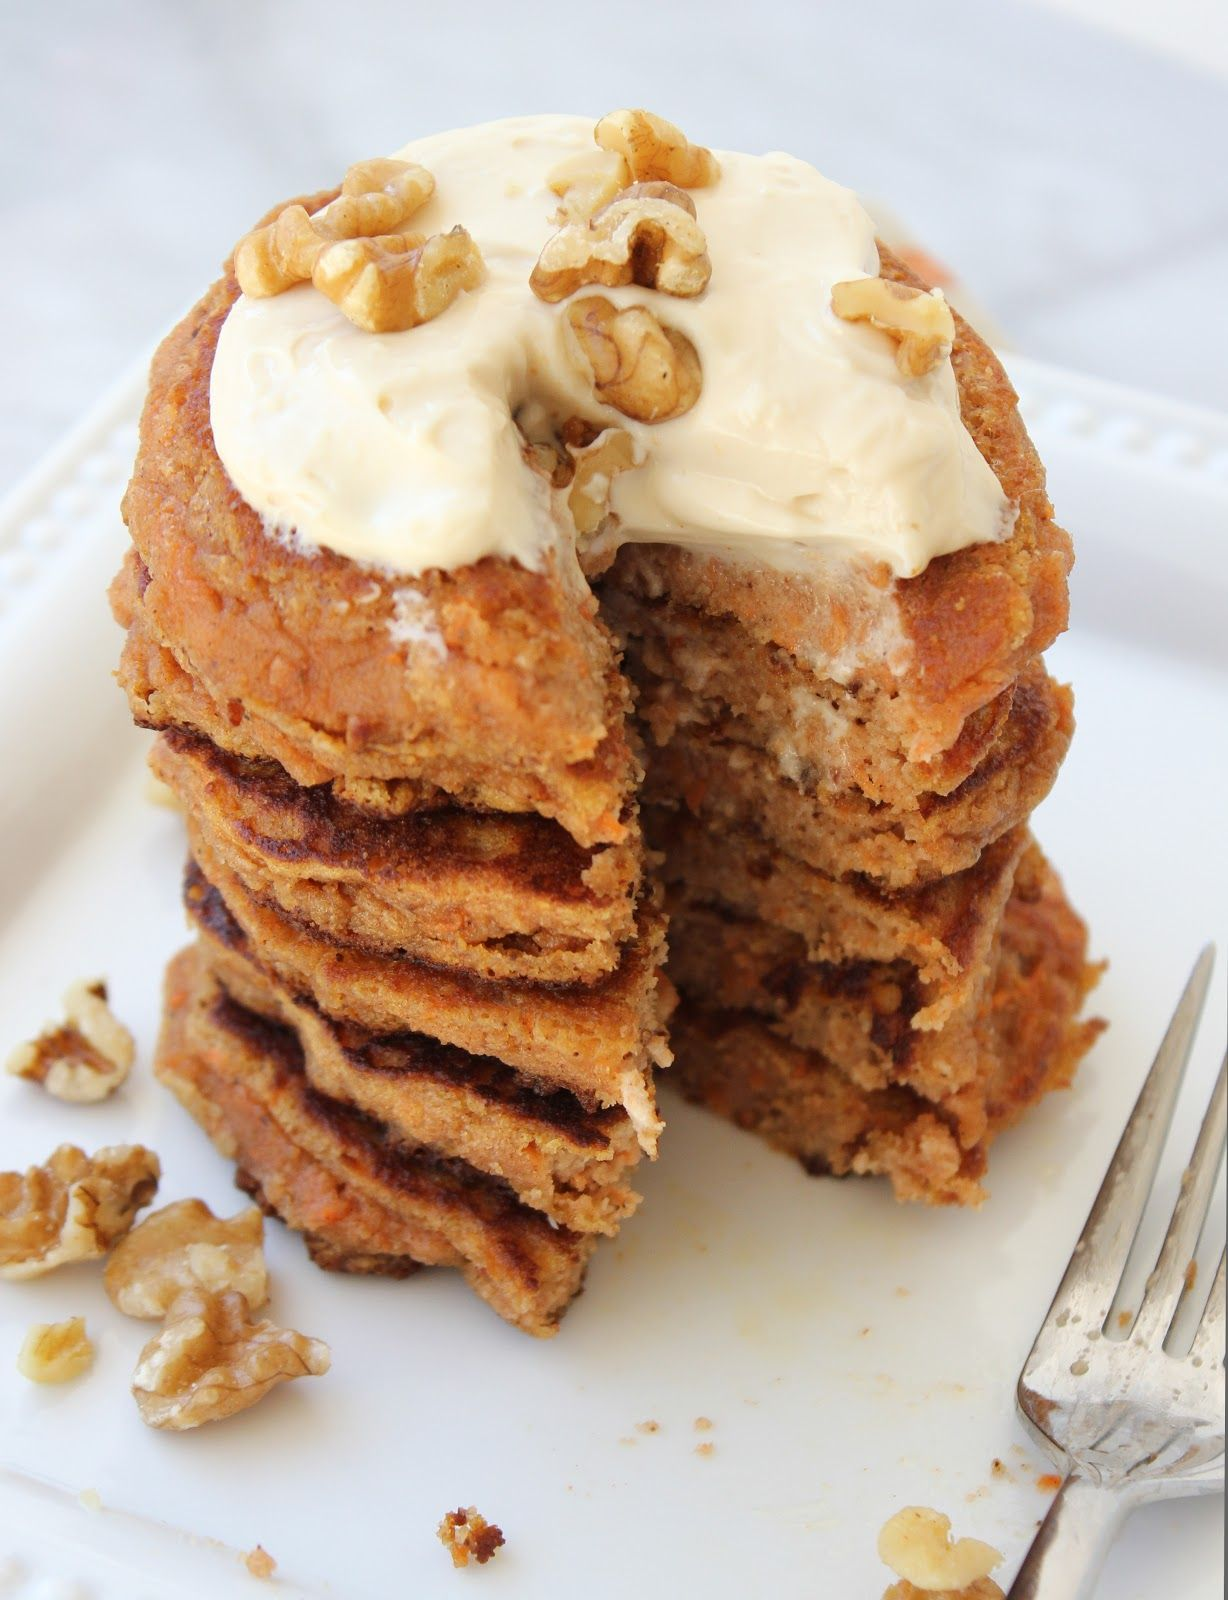 Whatever Dee-Dee wants, she's gonna get it: Almond Flour Carrot Cake Pancakes with Maple Cream Cheese Drizzle